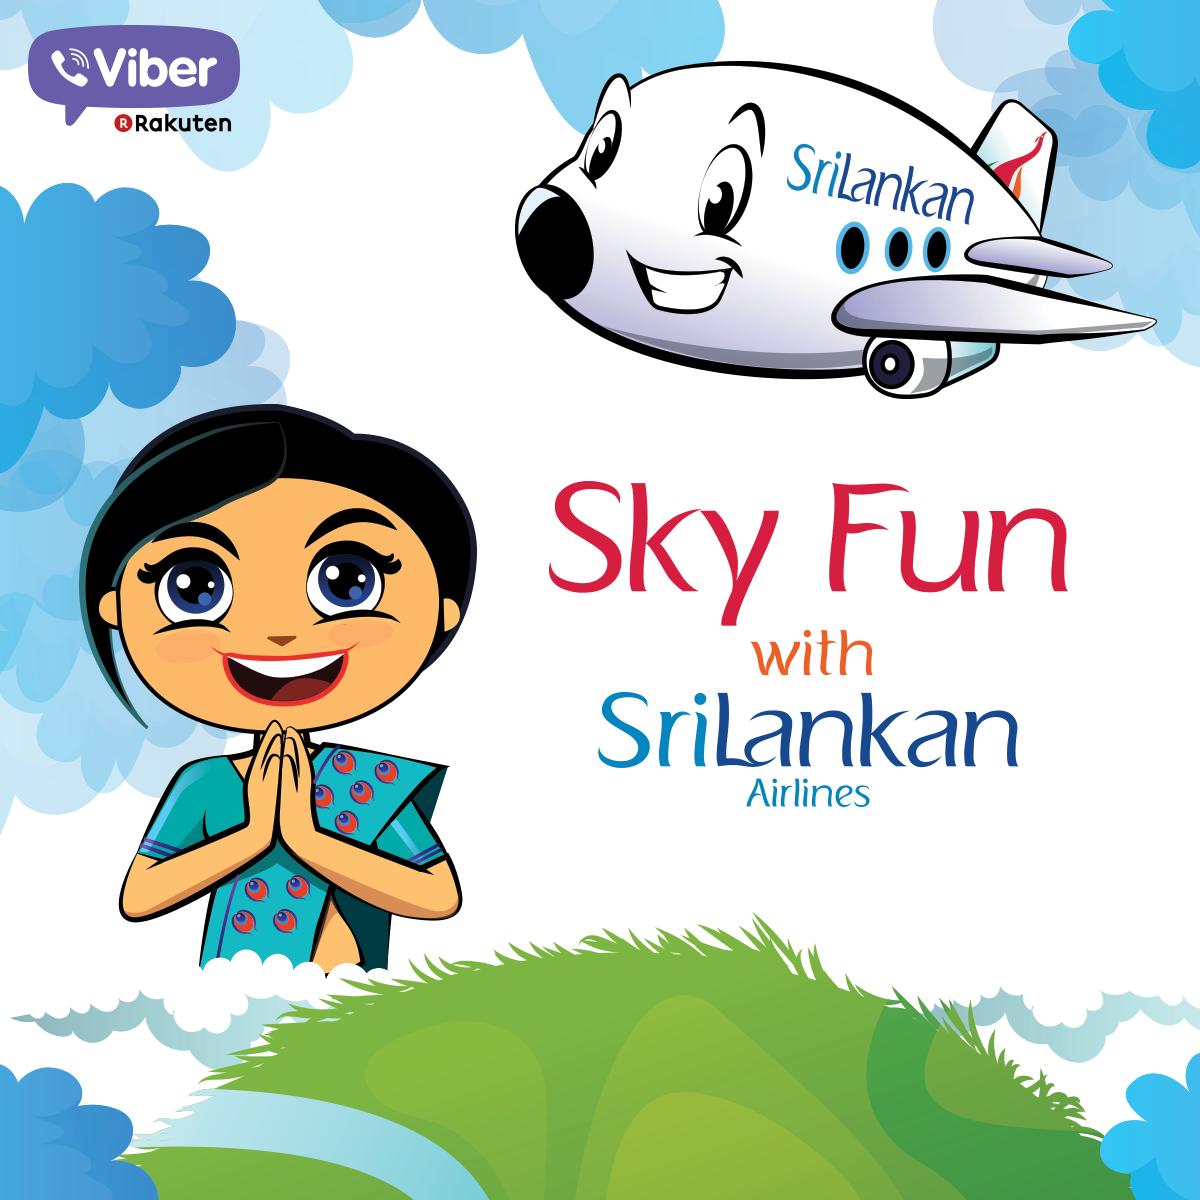 Download Viber stickers for Srilankan Airlines